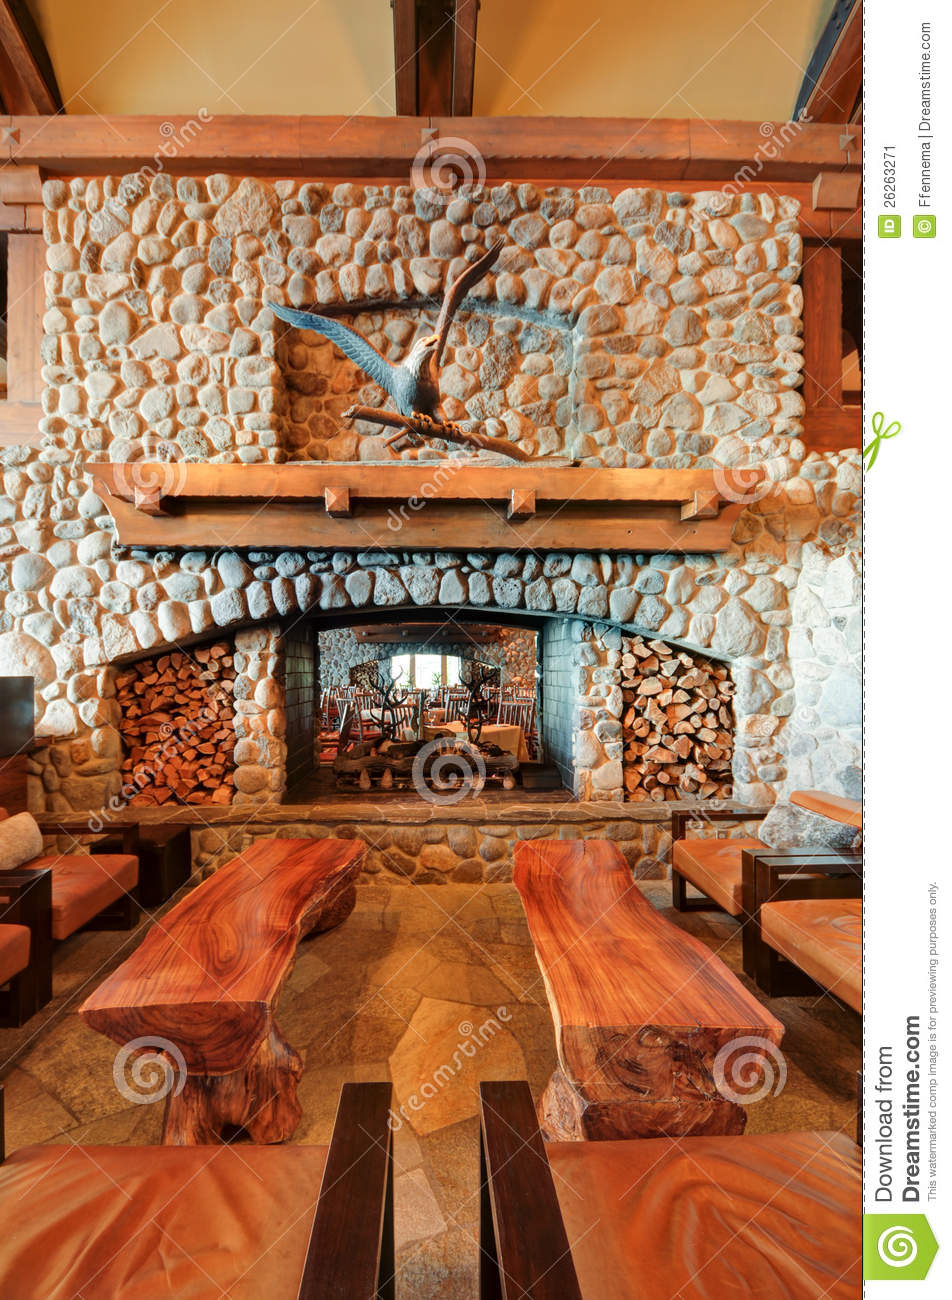 Restaurant Bar Fireplace With Wooden Benches Stock Image